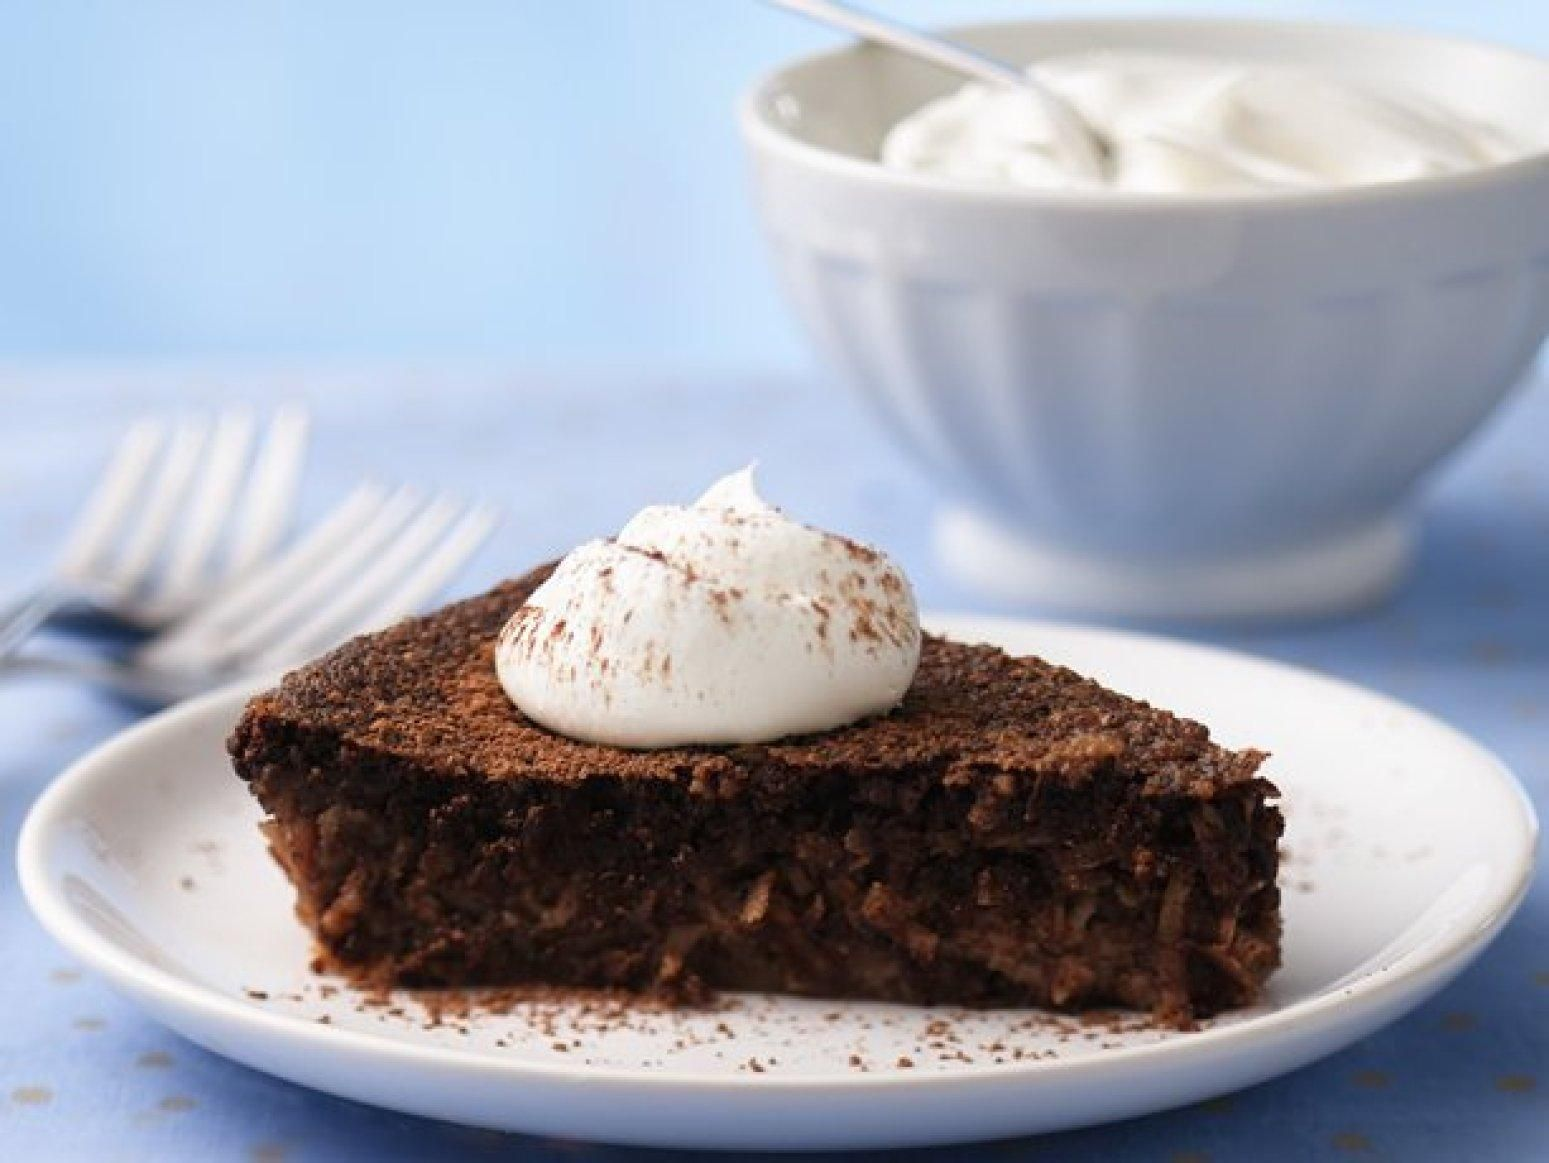 How to Bake an Impossible Chocolate Pie